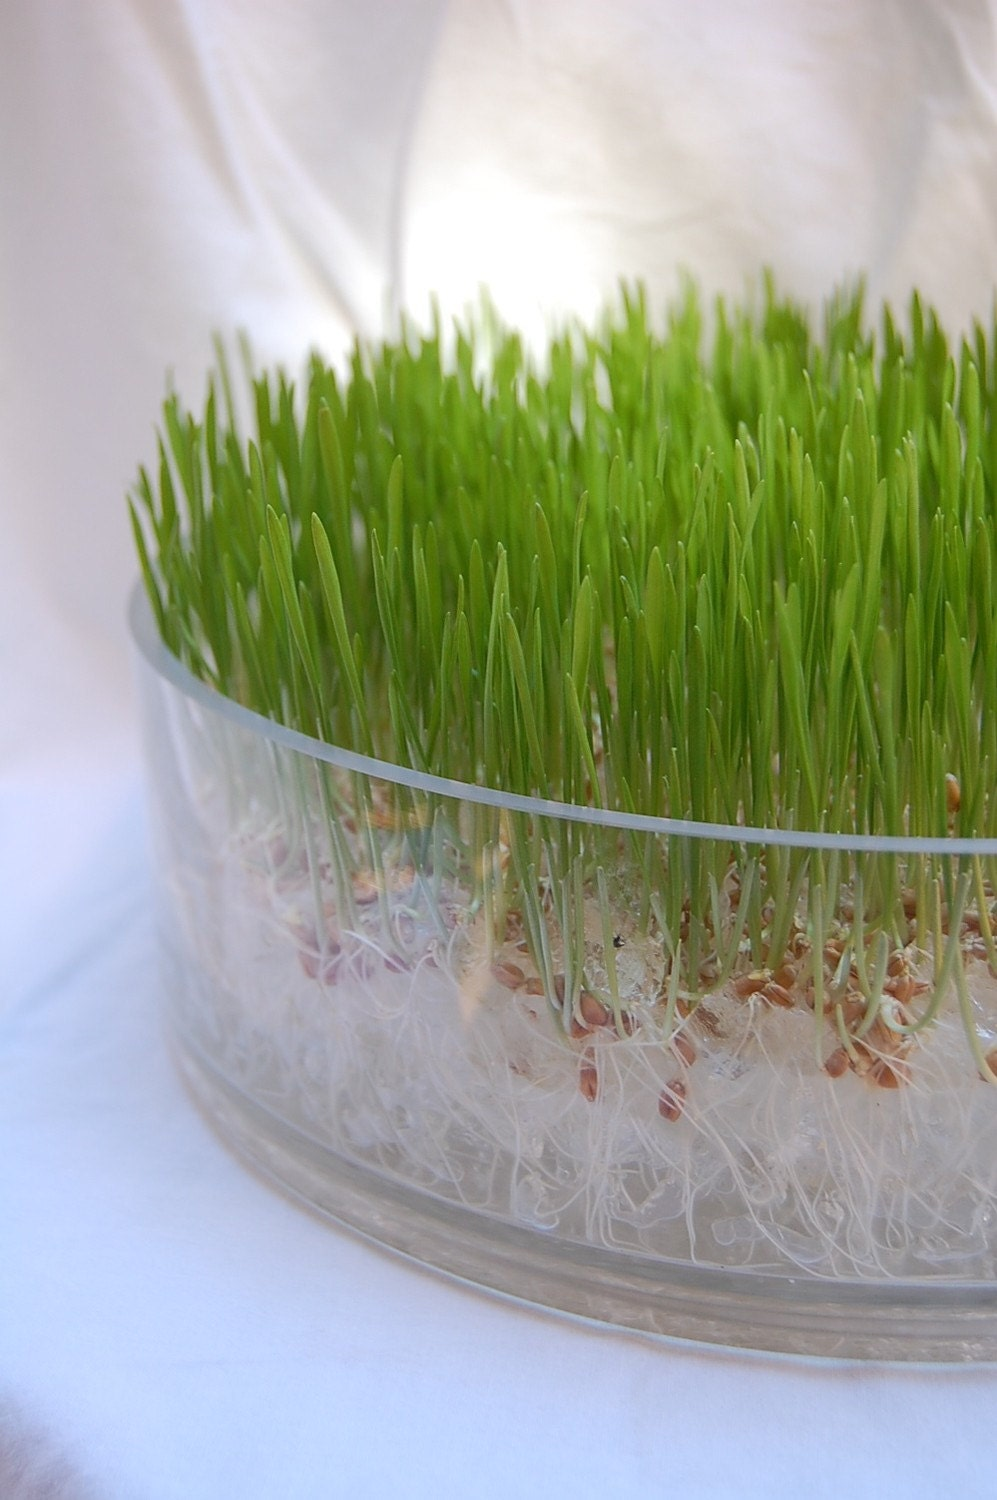 Chic Wheatgrass Soil-less Grow Kit In Glass Bowl